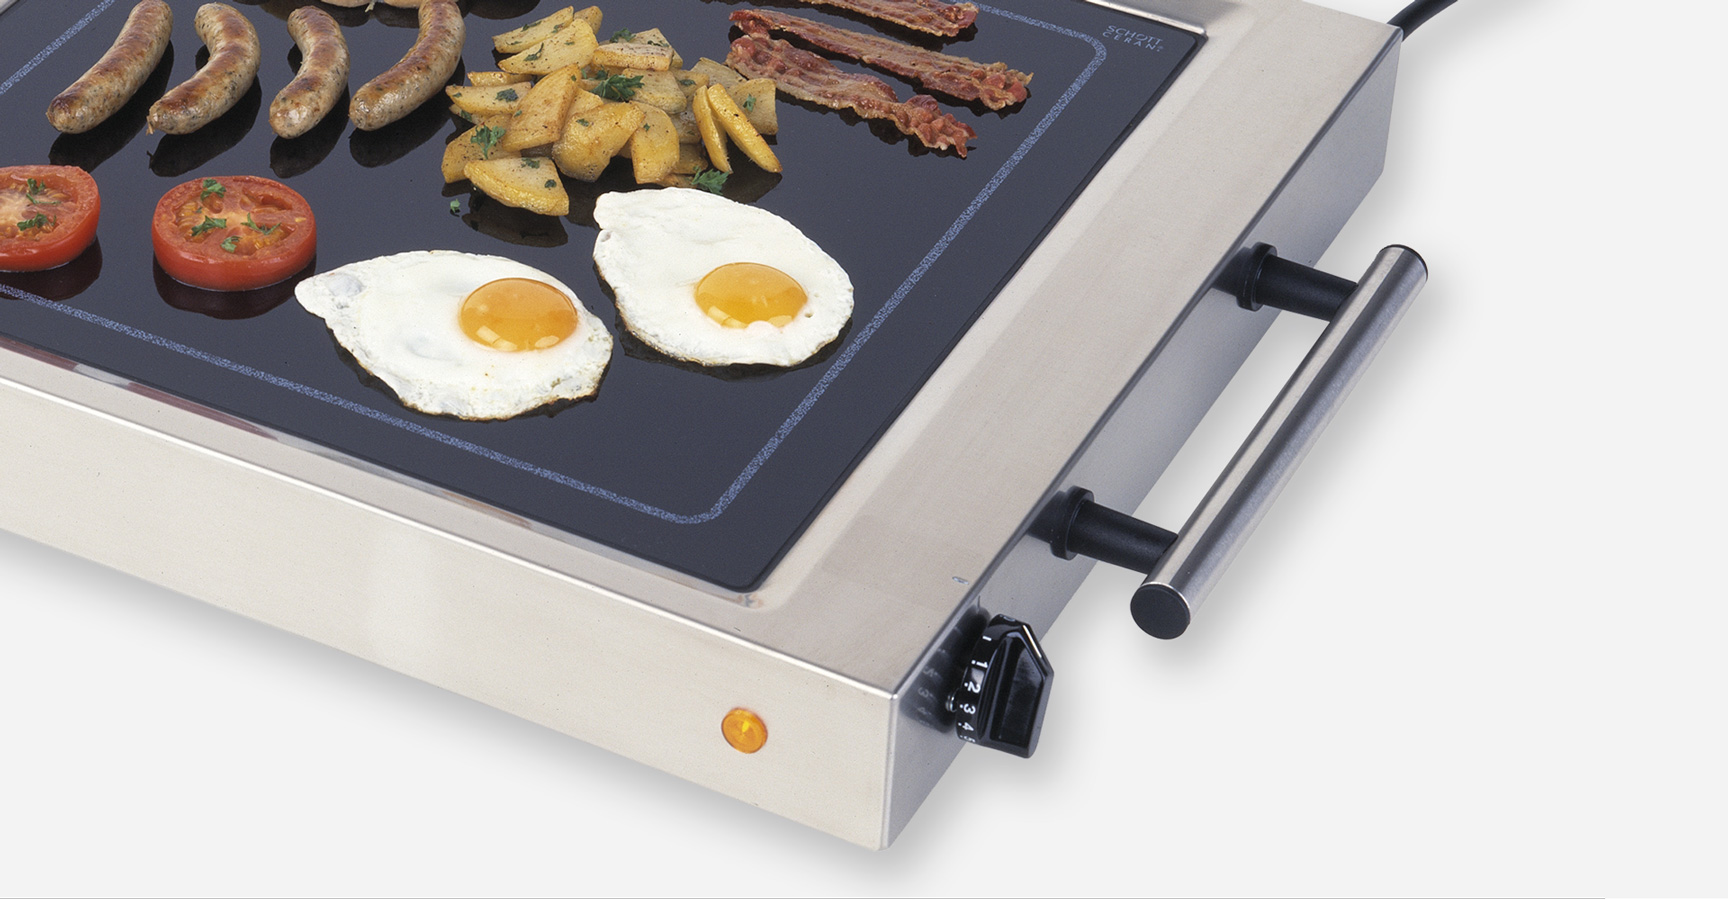 The Best Electric Grill For Indoor Outdoor Lemax Grill - Lemax Grill